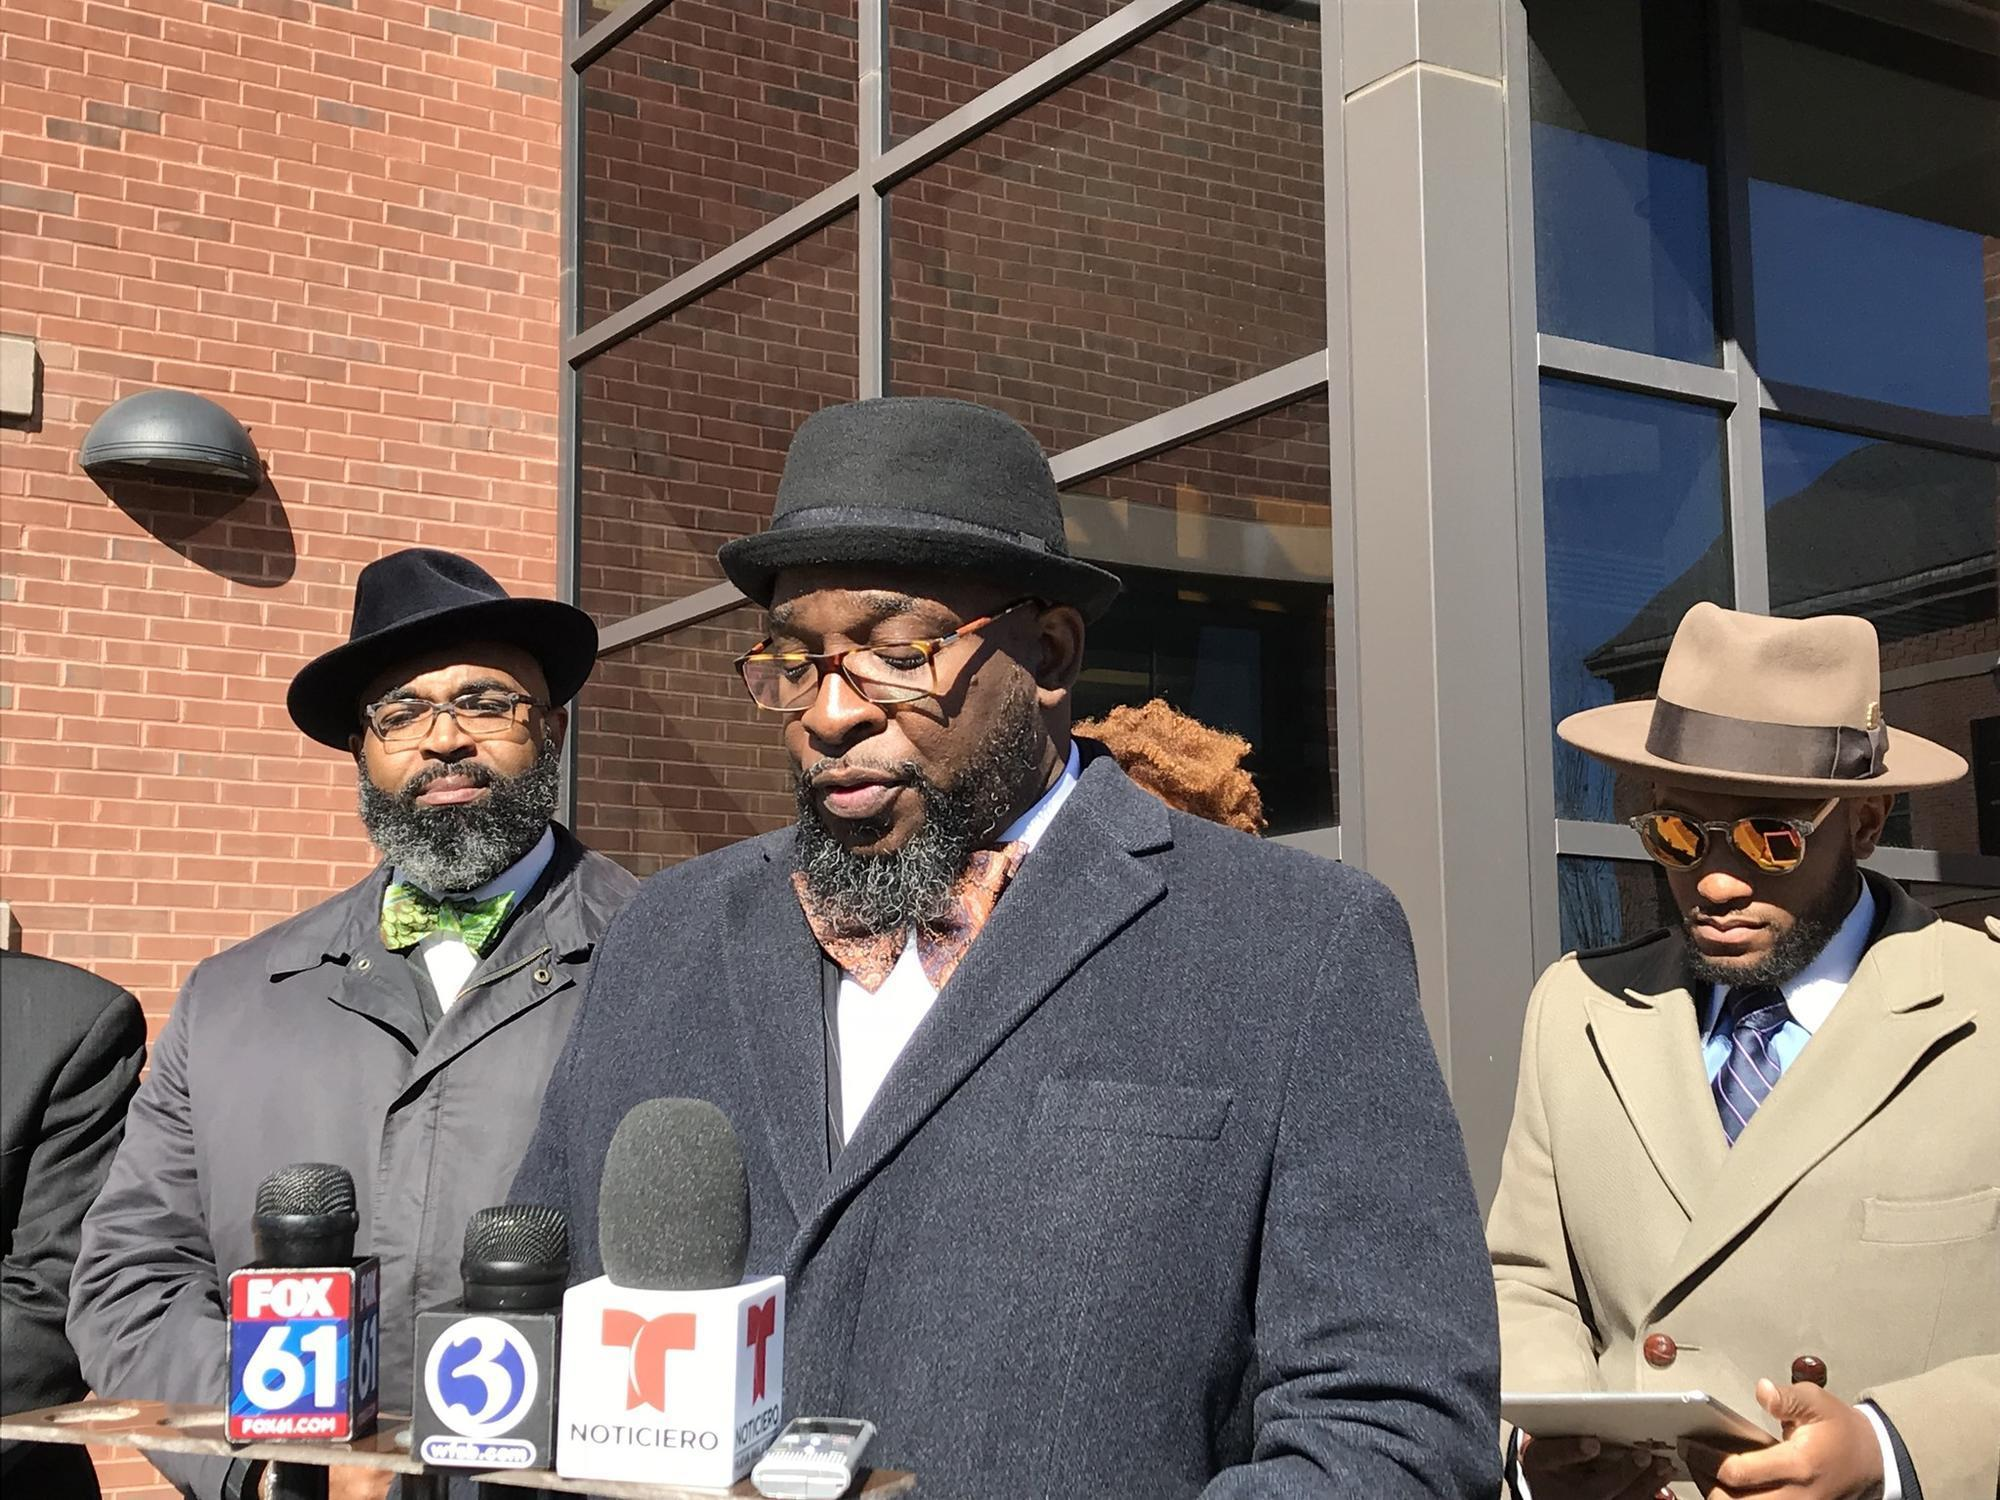 Hartford Faith Leaders Applaud Firing Of 'Trigger Happy' Cop, Renew Call For More Diversity In Police Ranks | Hartford Courant